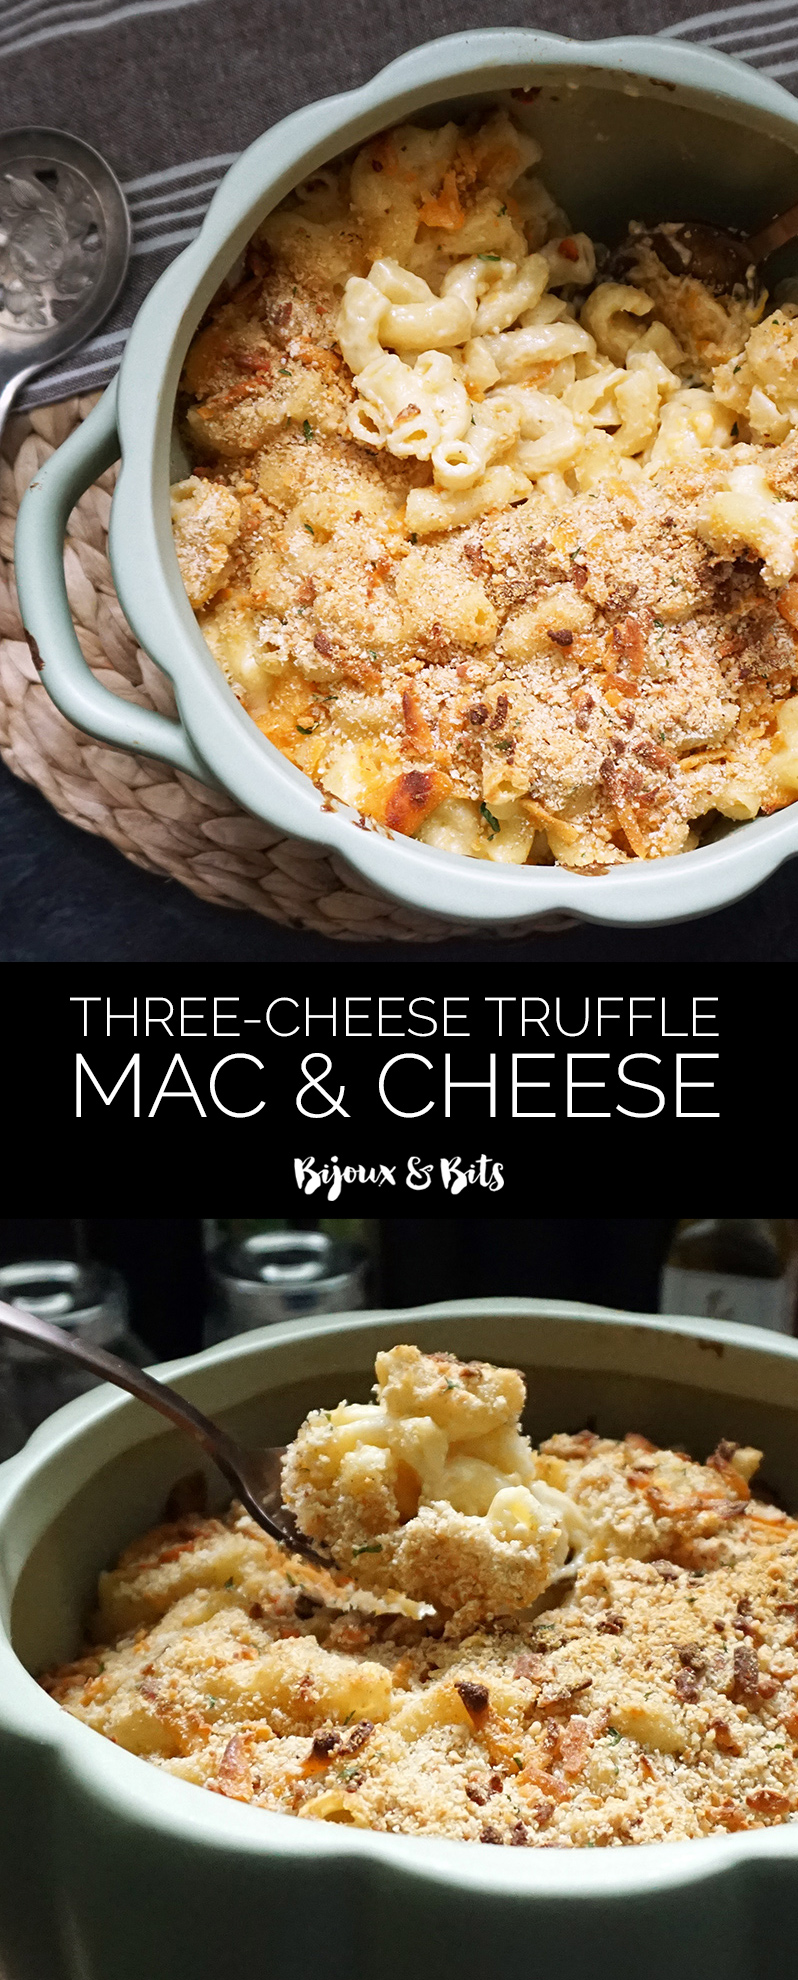 Three-cheese brown butter truffle mac and cheese recipe from @bijouxandbits #superbowl #oscars